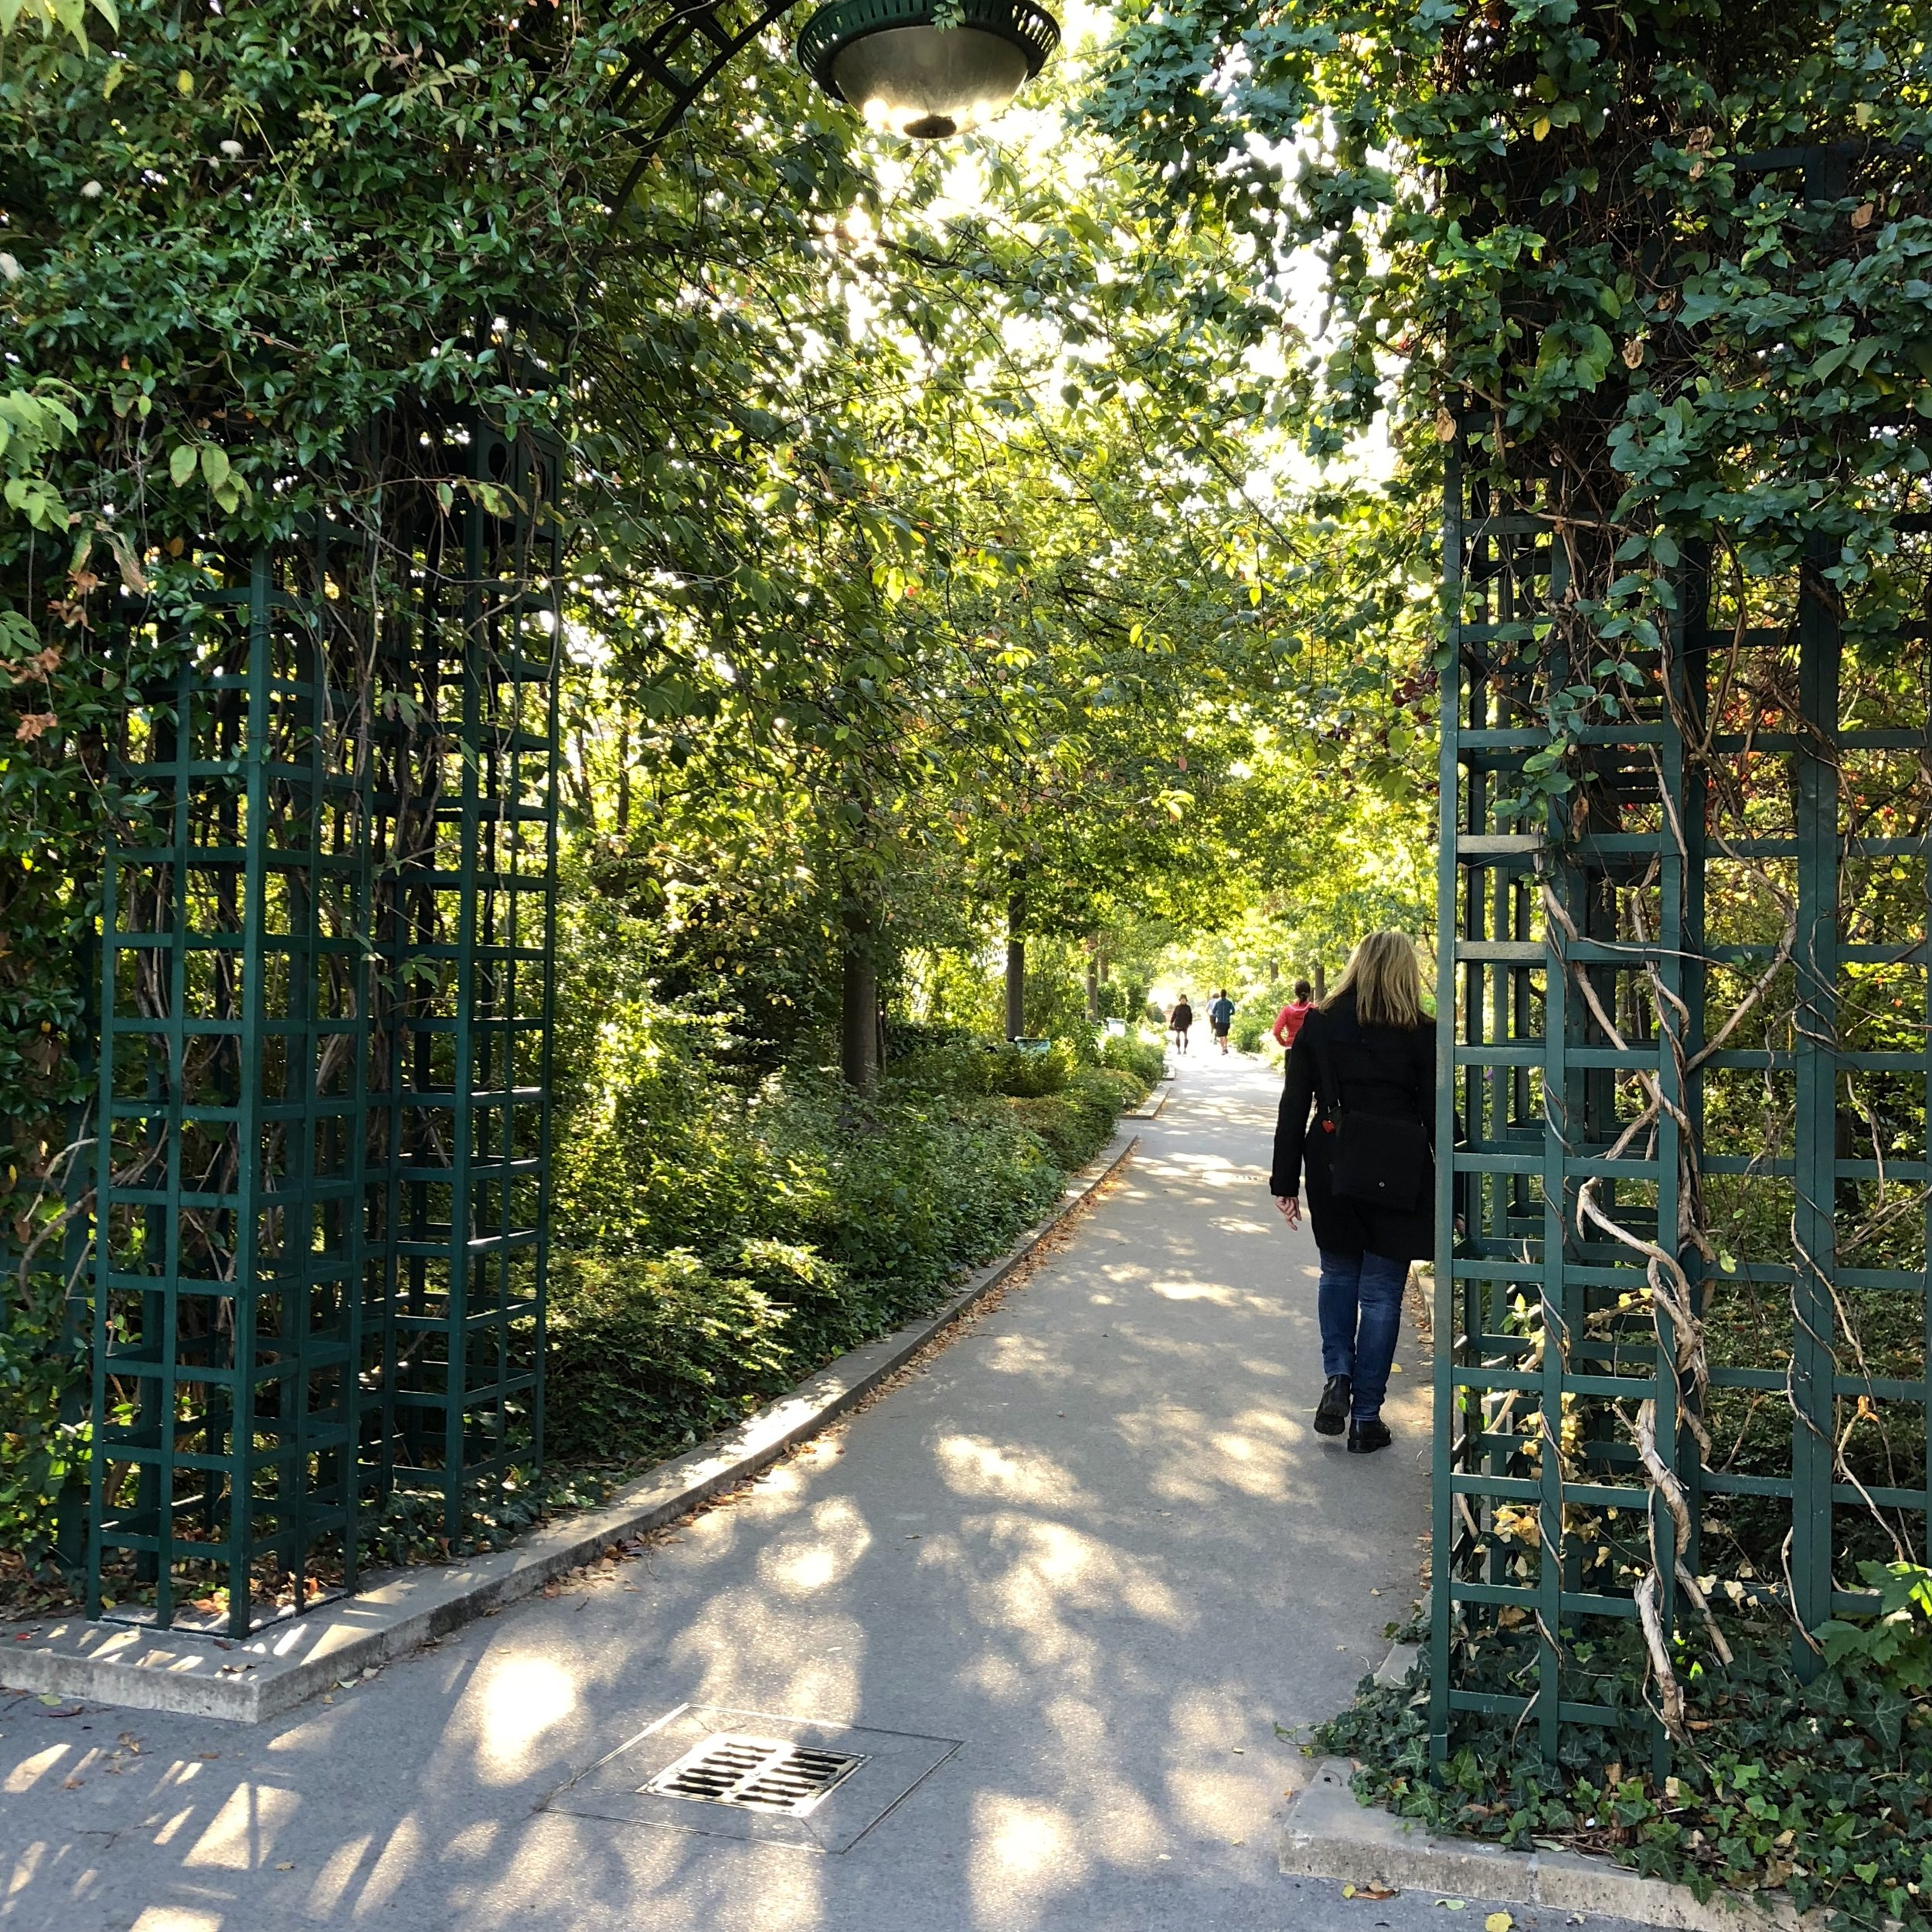 An aqueduct repurposed as an elevated walkway garden